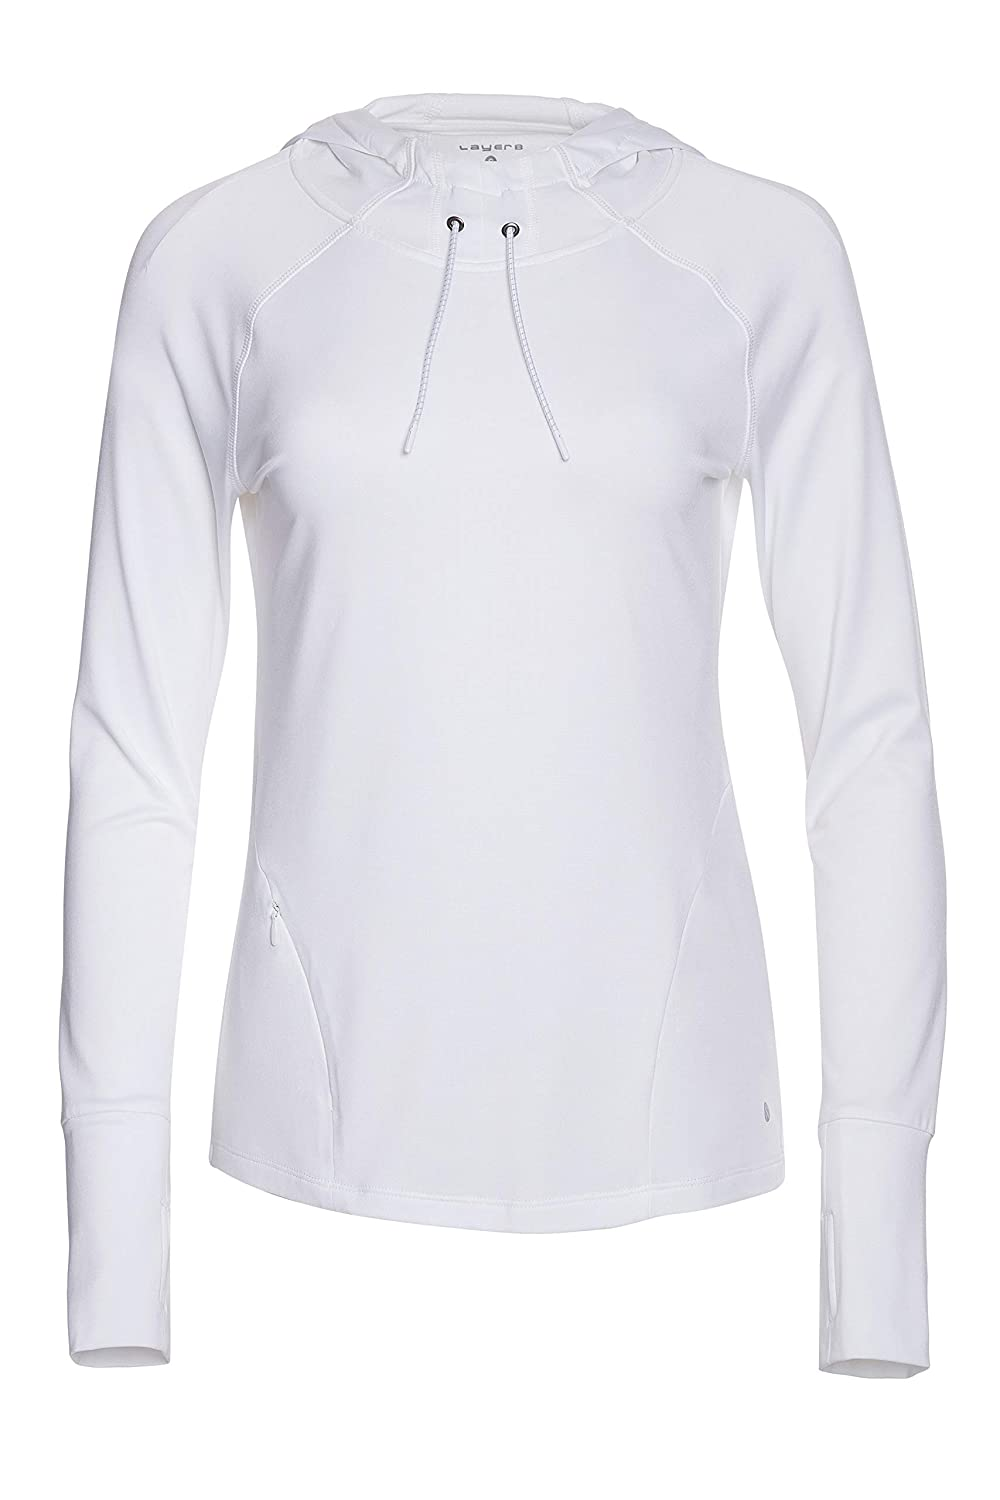 White Layer 8 Ladies Long Sleeve Hooded Top with Side Pulls